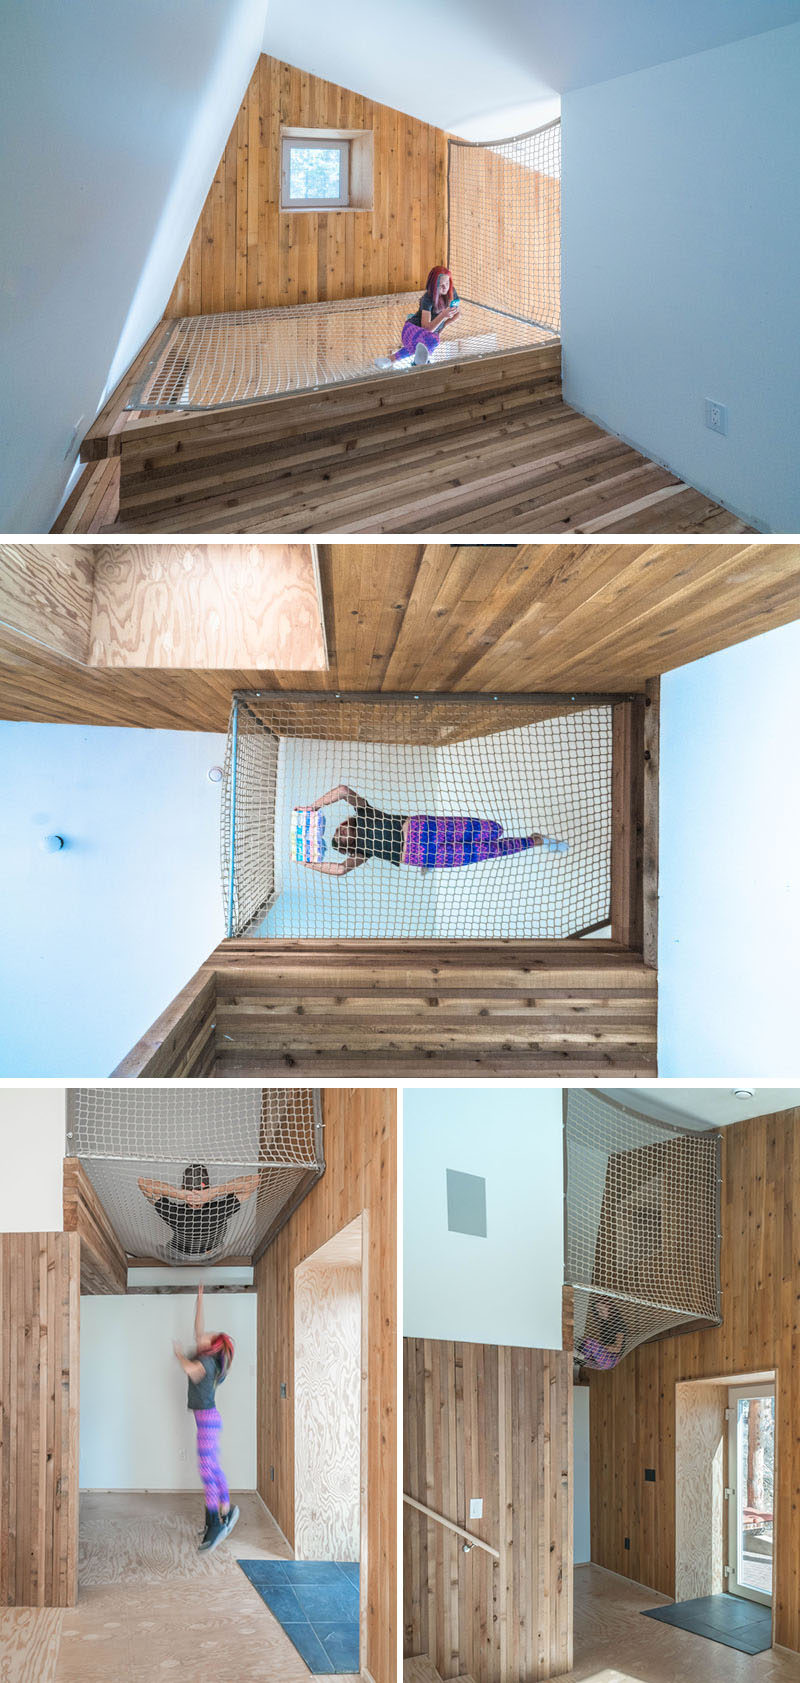 The lofted net in this home provides a fun hideaway for the kids and creates the perfect reading nook.